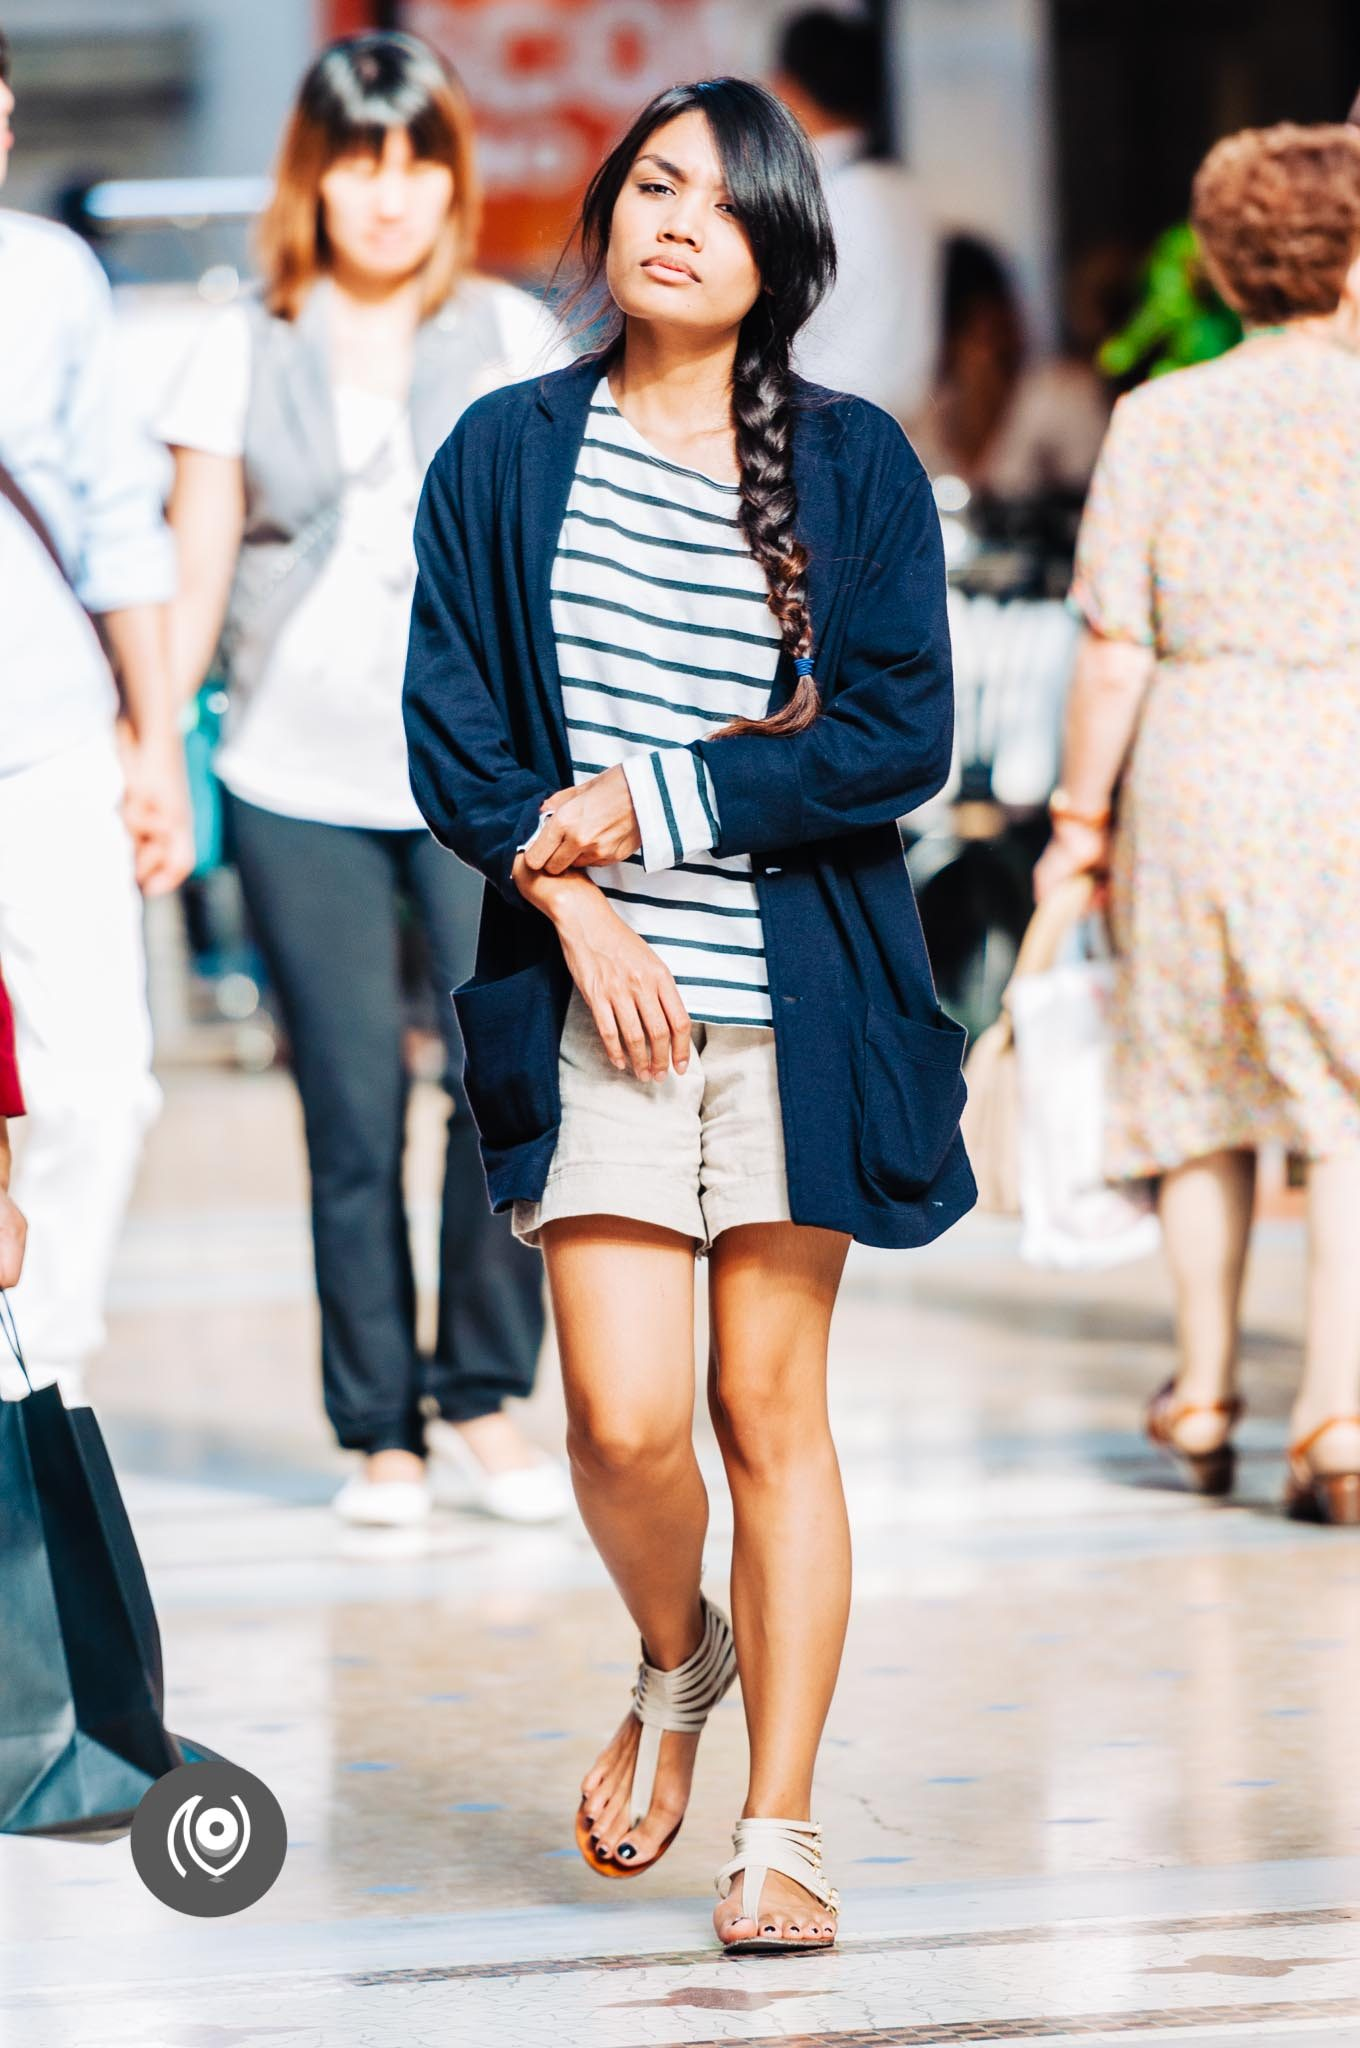 #EyesForStreetStyle, Milan, Italy, #EyesForEurope, Naina.co Luxury & Lifestyle, Photographer Storyteller, Blogger.